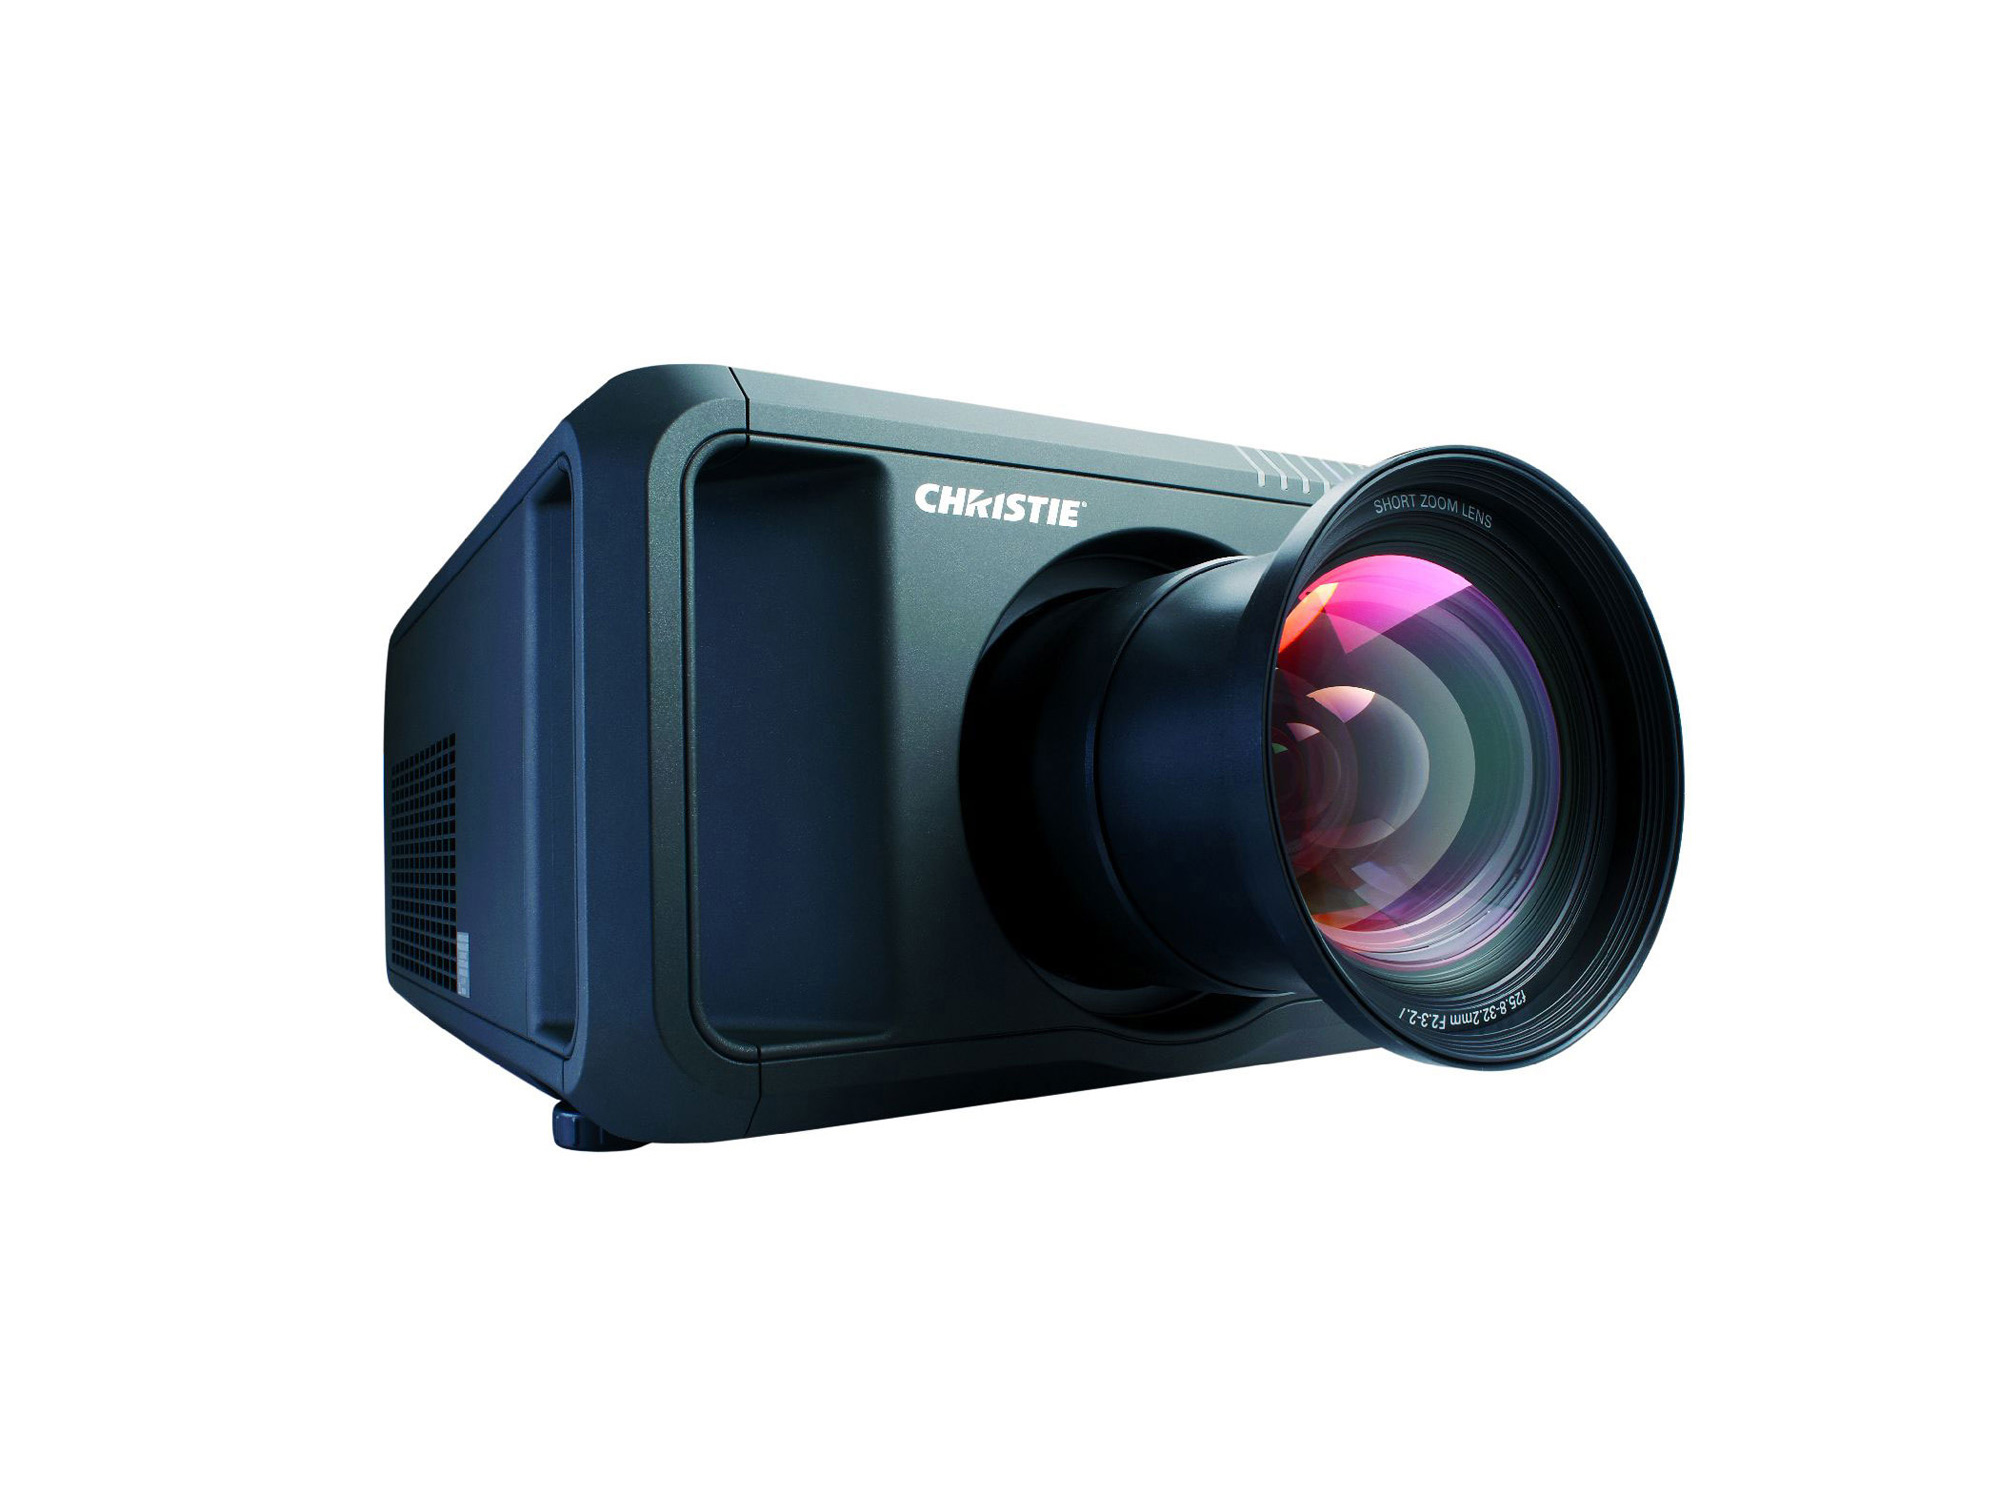 /globalassets/.catalog/products/images/christie-dhd700/gallery/christie-dhd700-1-chip-digital-projector-image1.jpg